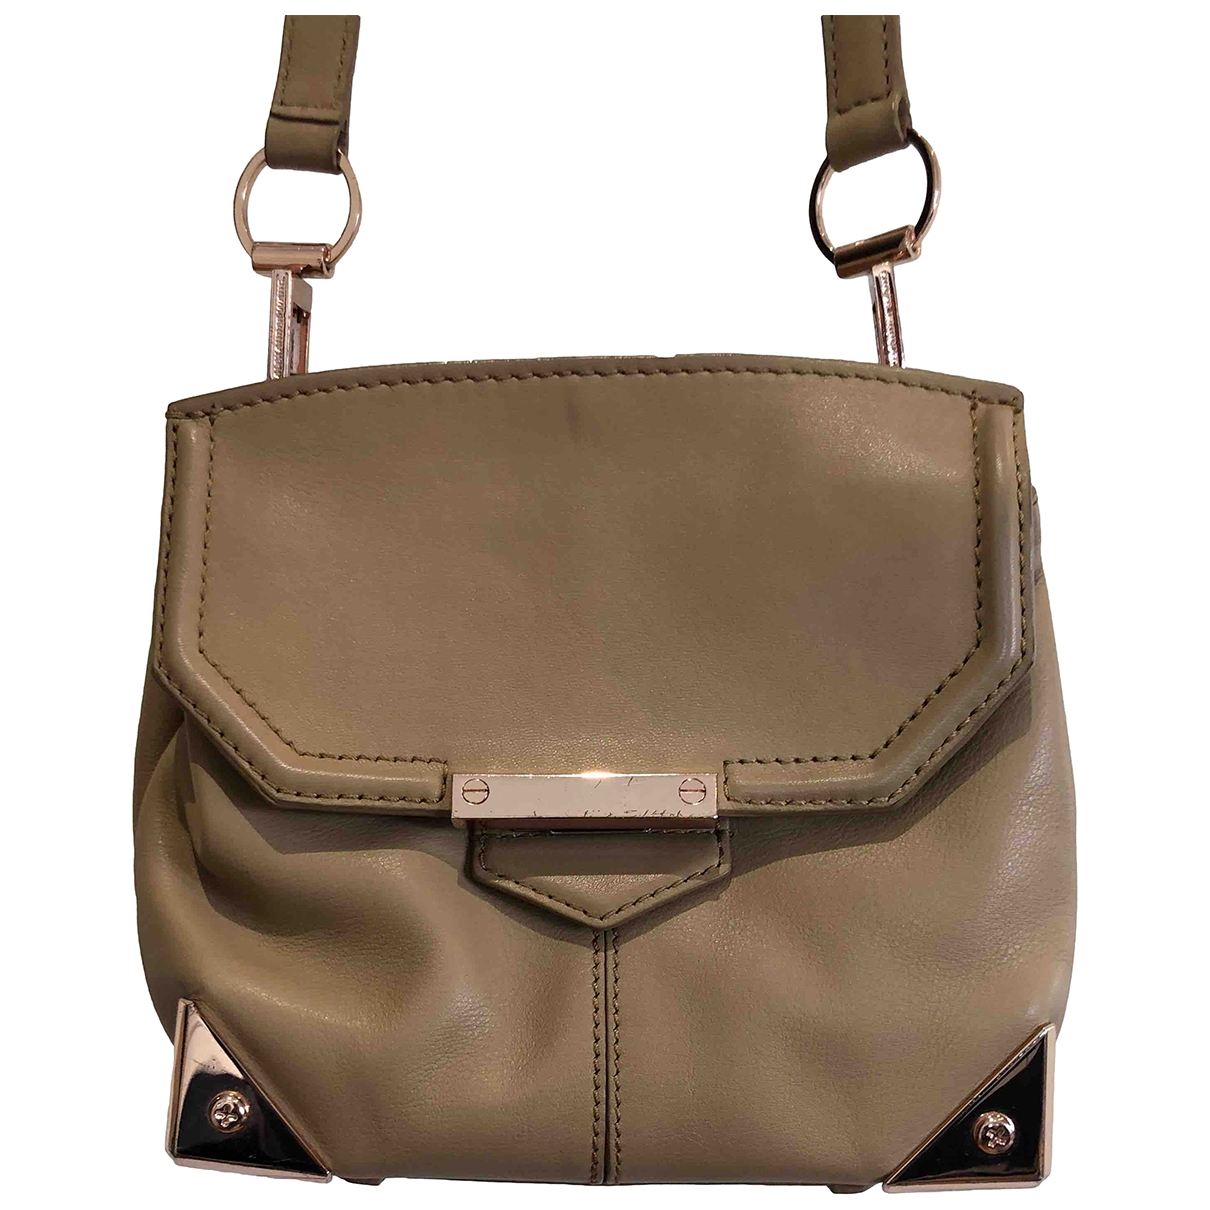 Alexander Wang \N Beige Leather handbag for Women \N